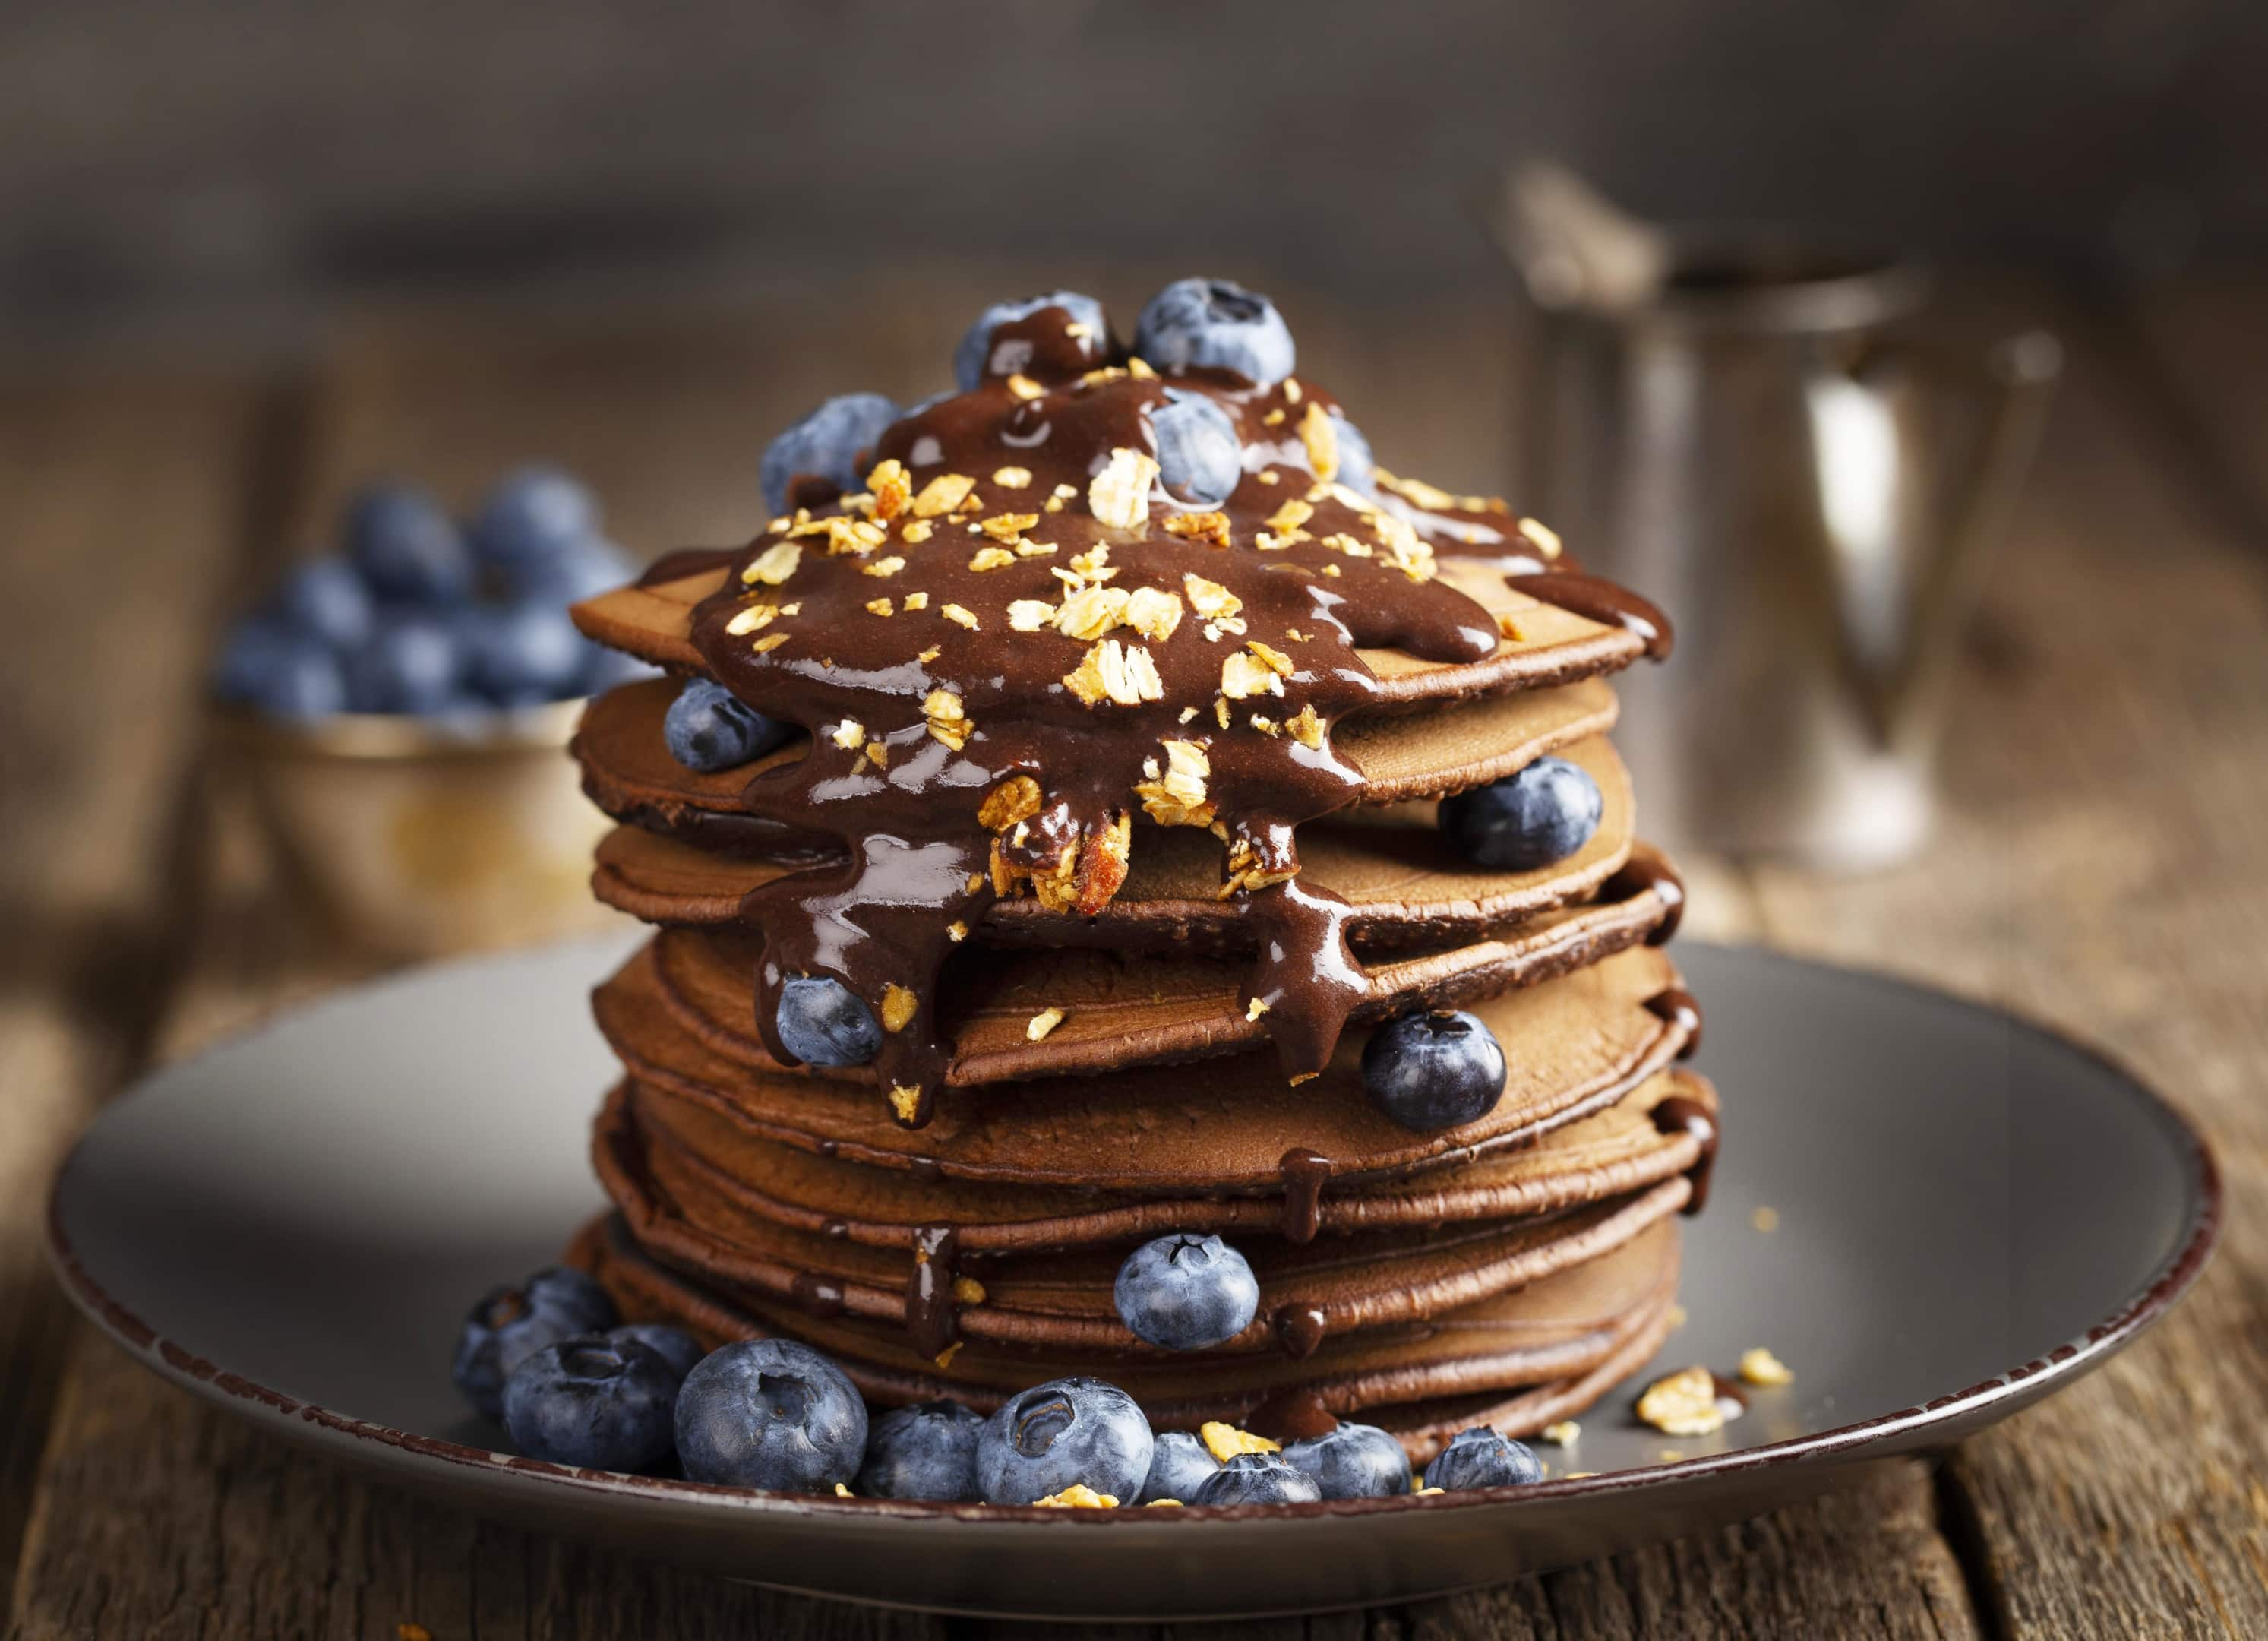 Oat flour pancakes tower with melted chocolate and blueberries